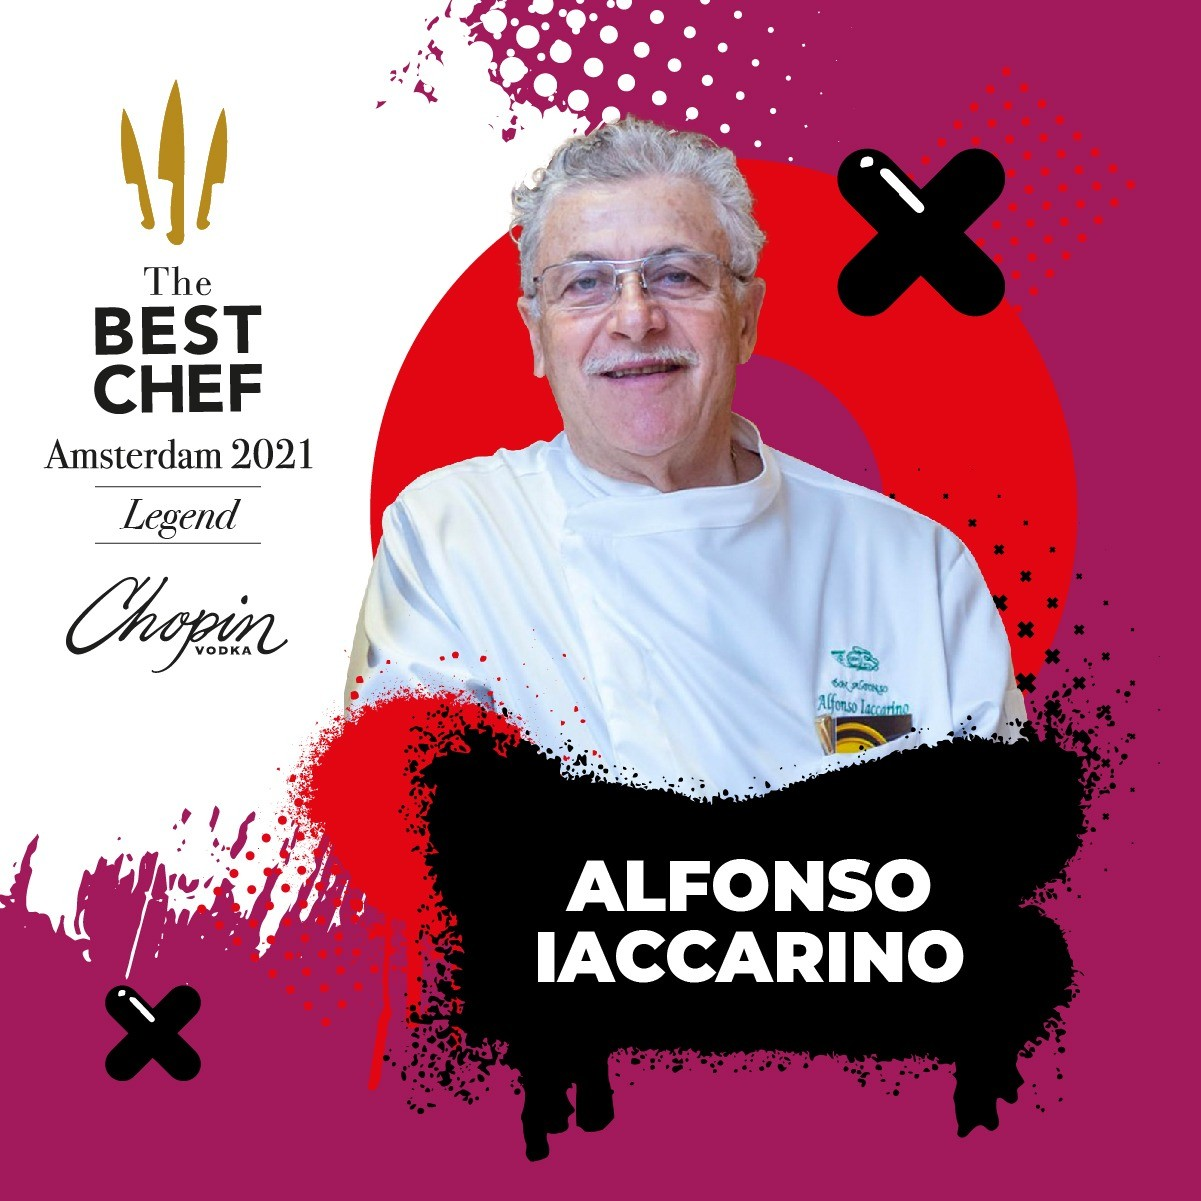 the best chef alfonso iaccarino